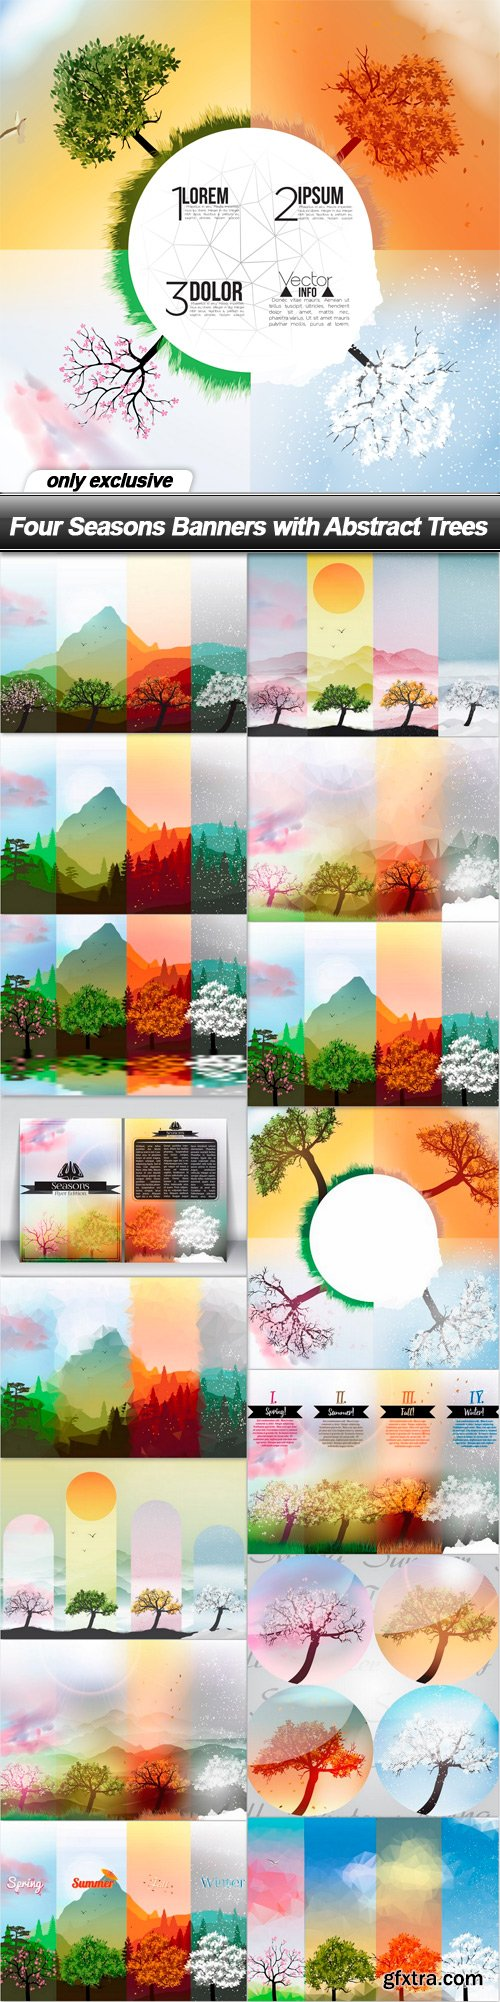 Four Seasons Banners with Abstract Trees - 16 EPS